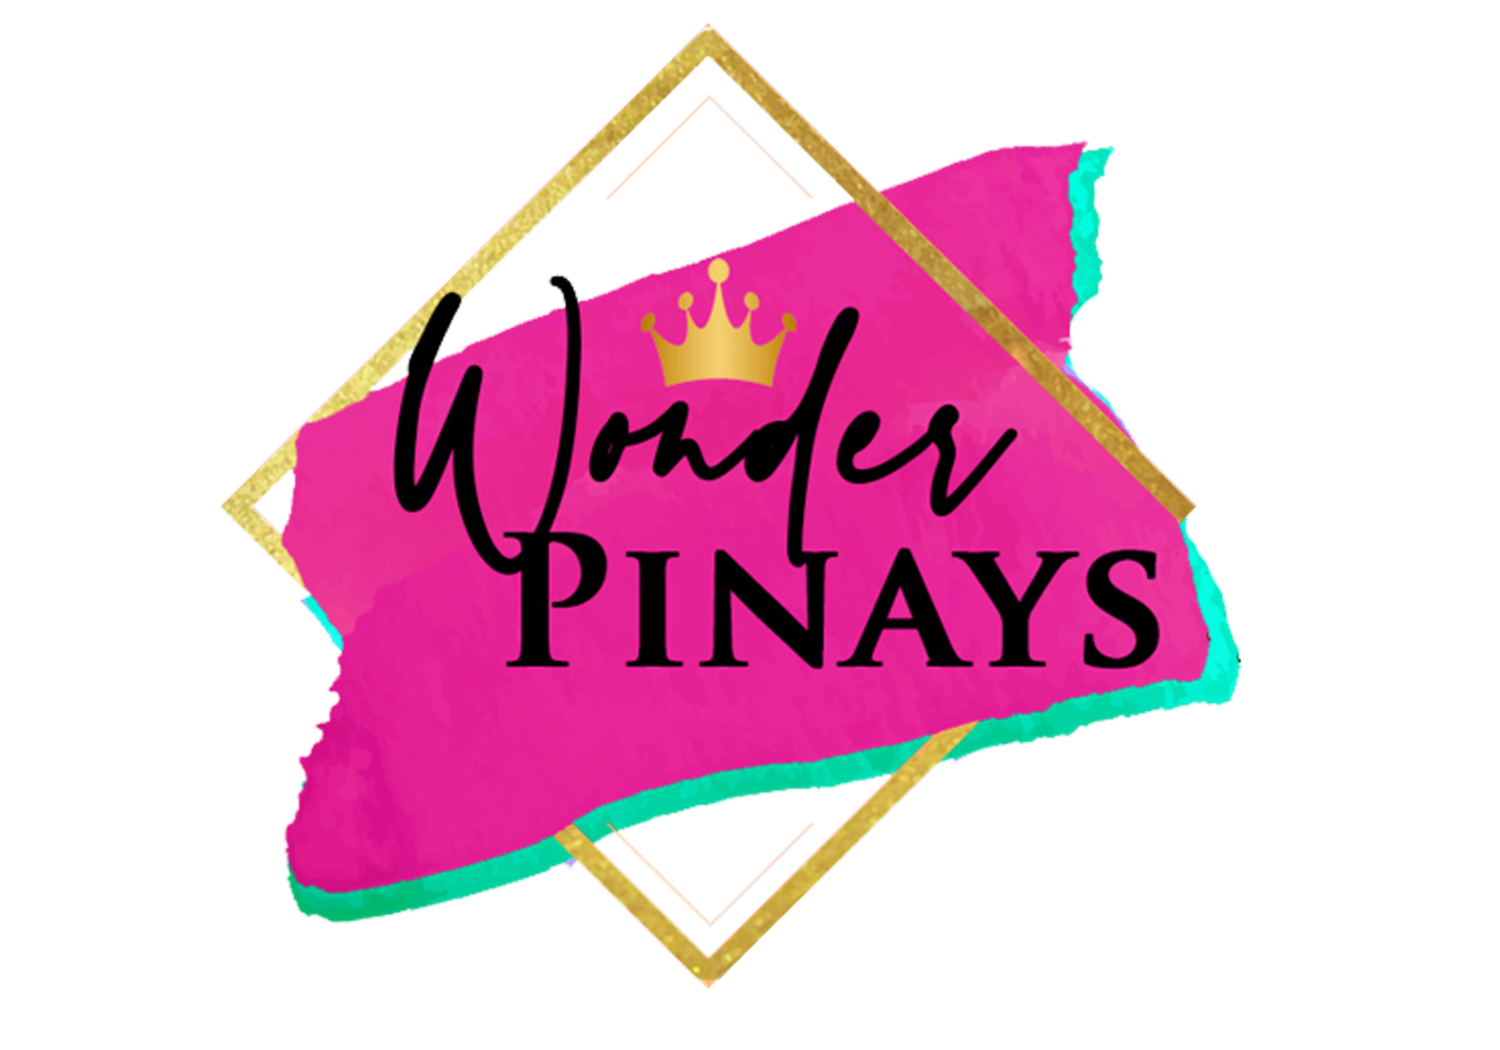 Wonder Pinays